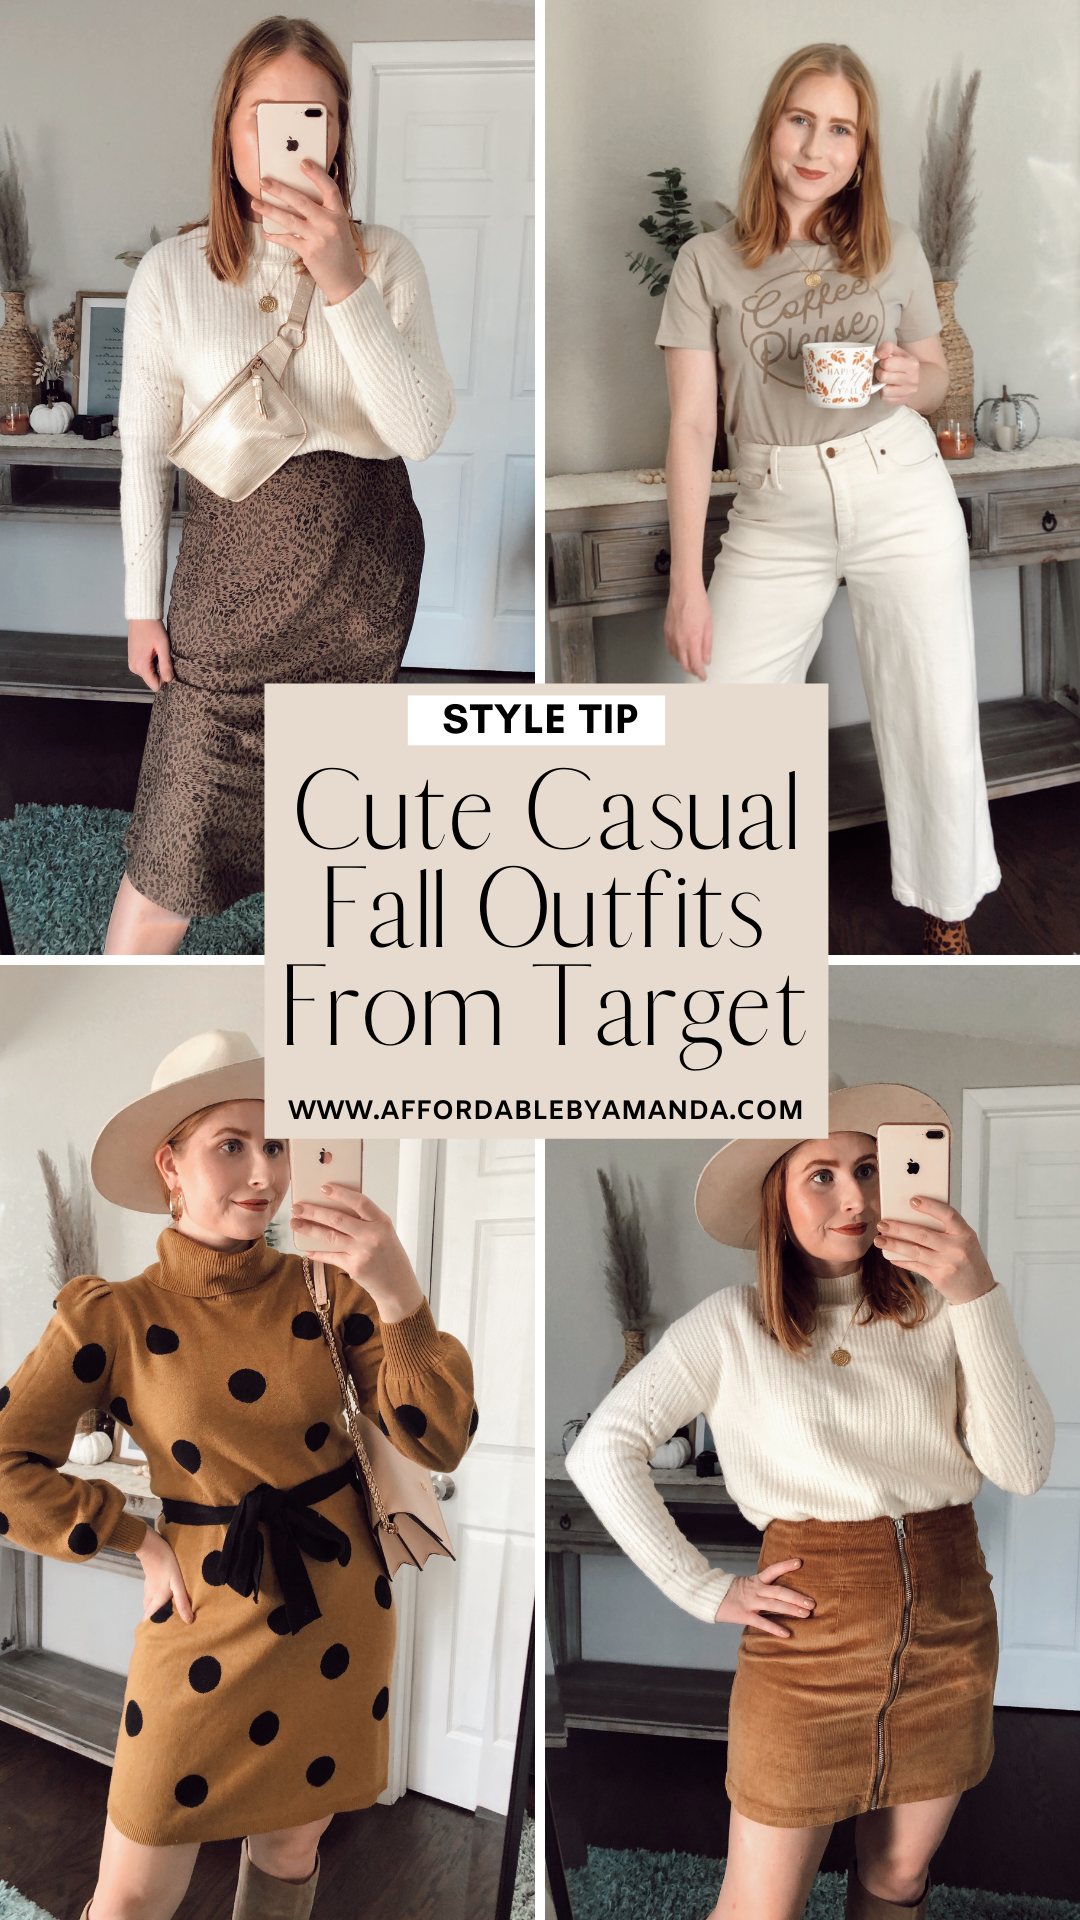 Cute Casual Fall Outfits From Target Affordable By Amanda